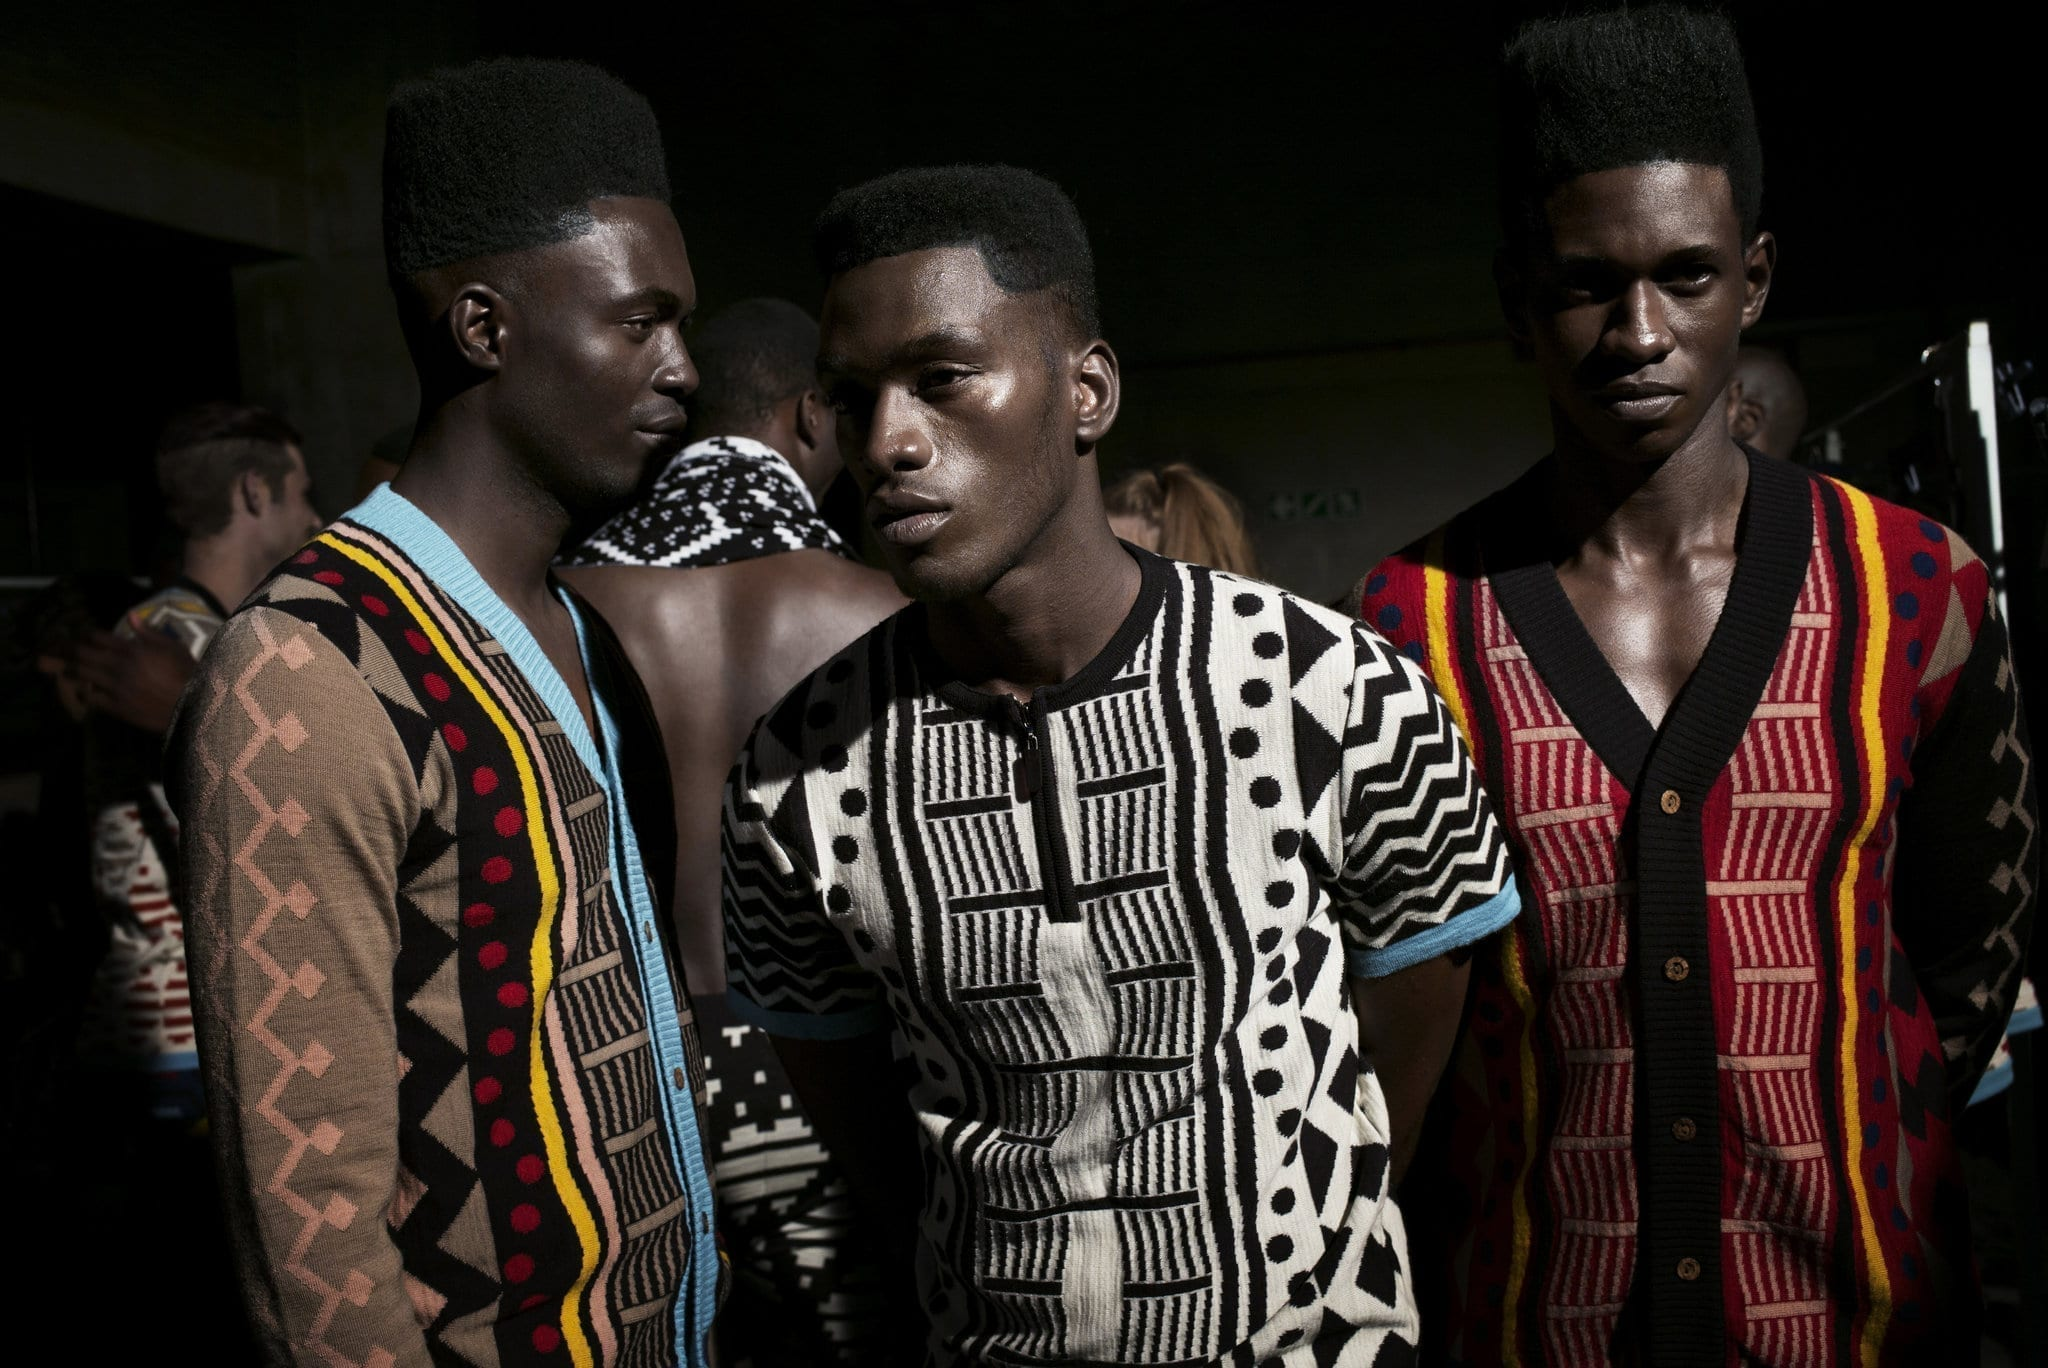 South african fashion model 23